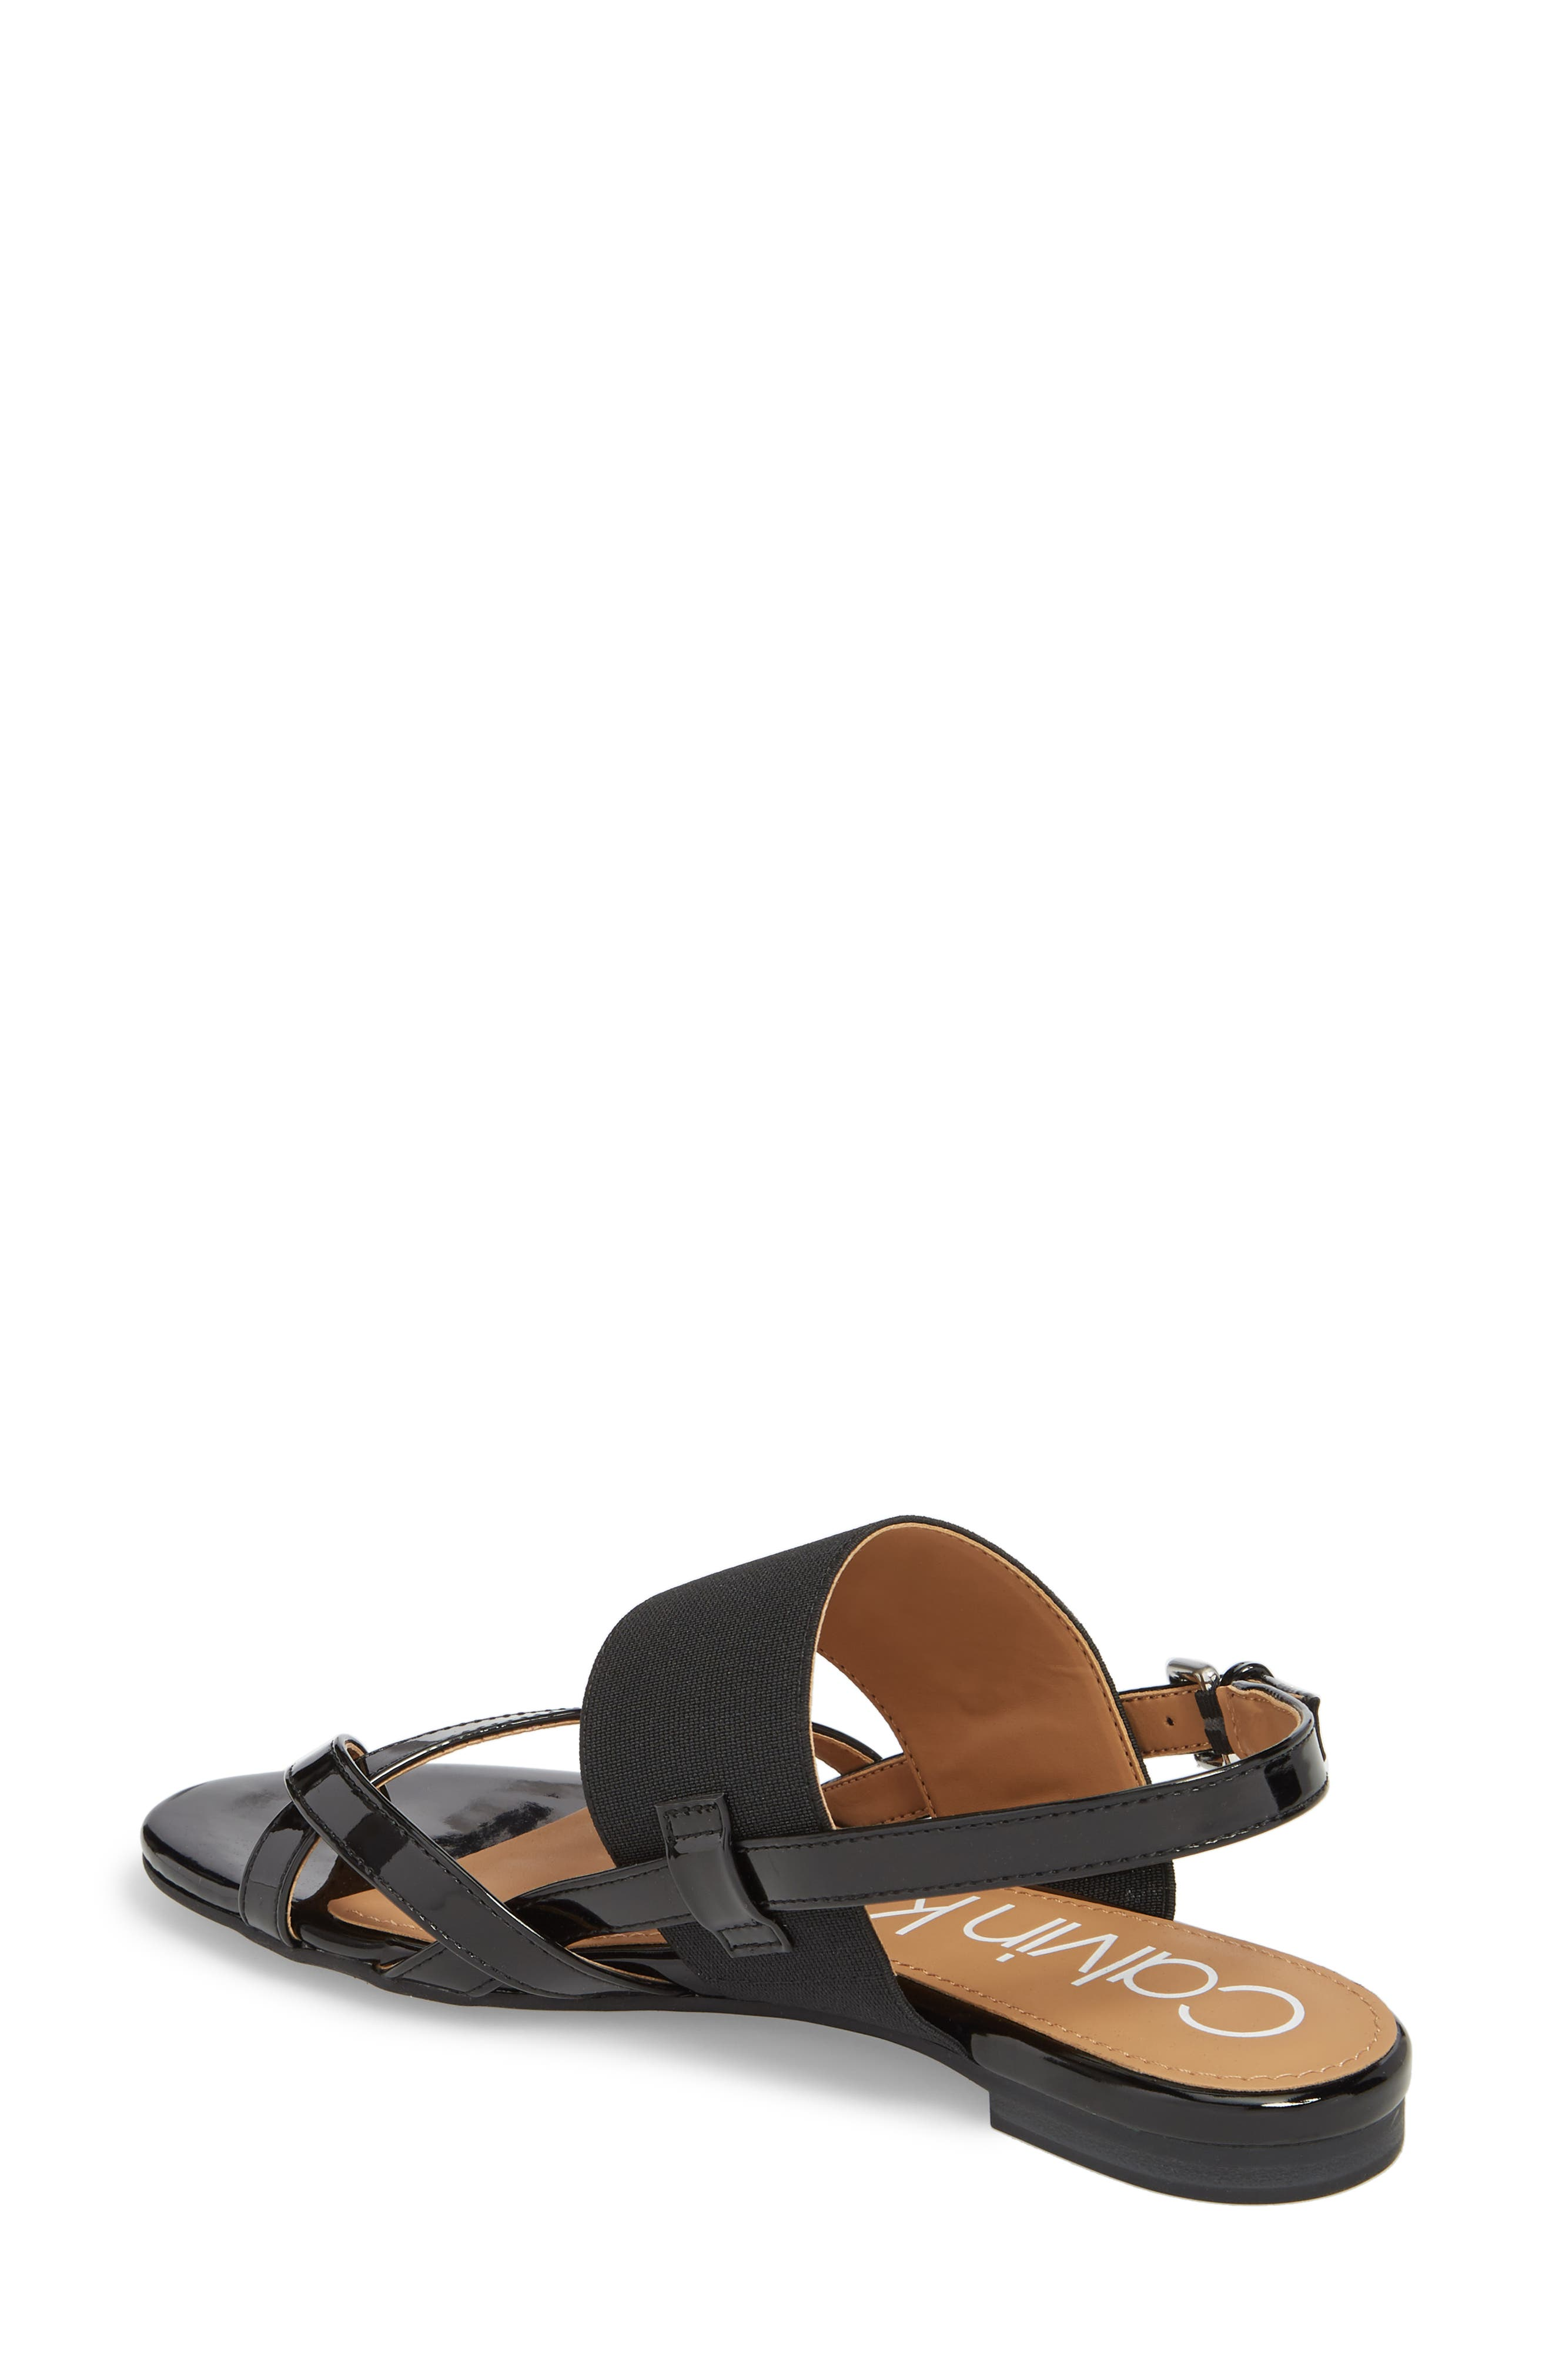 CALVIN KLEIN, Berry Sandal, Alternate thumbnail 2, color, 001